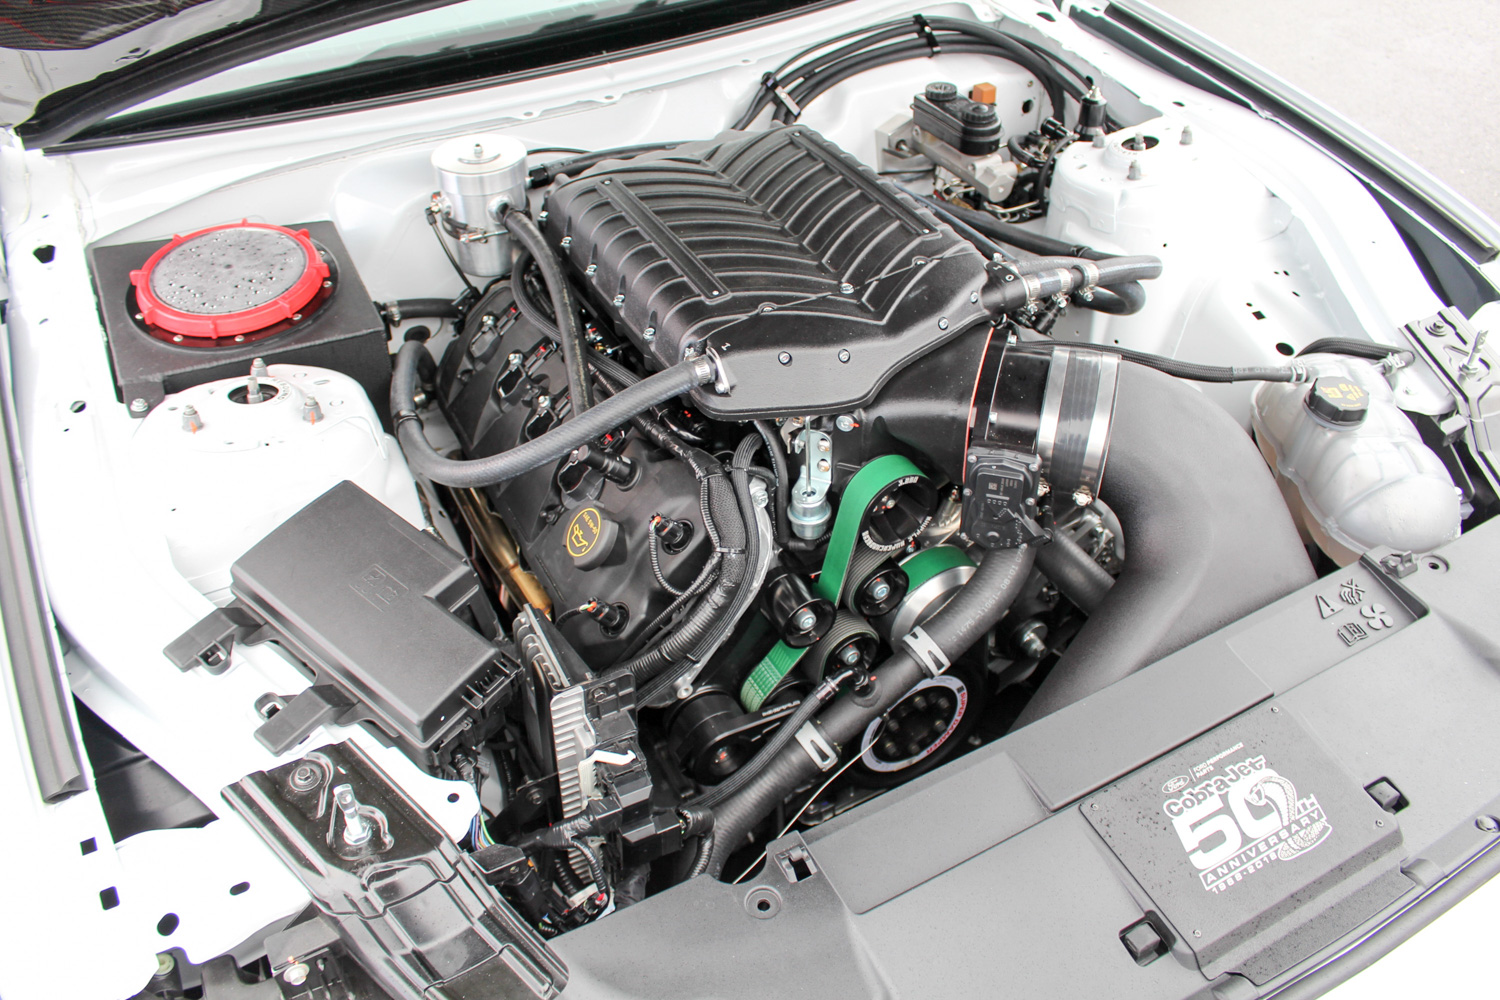 2018 Ford Mustang Cobra Jet engine